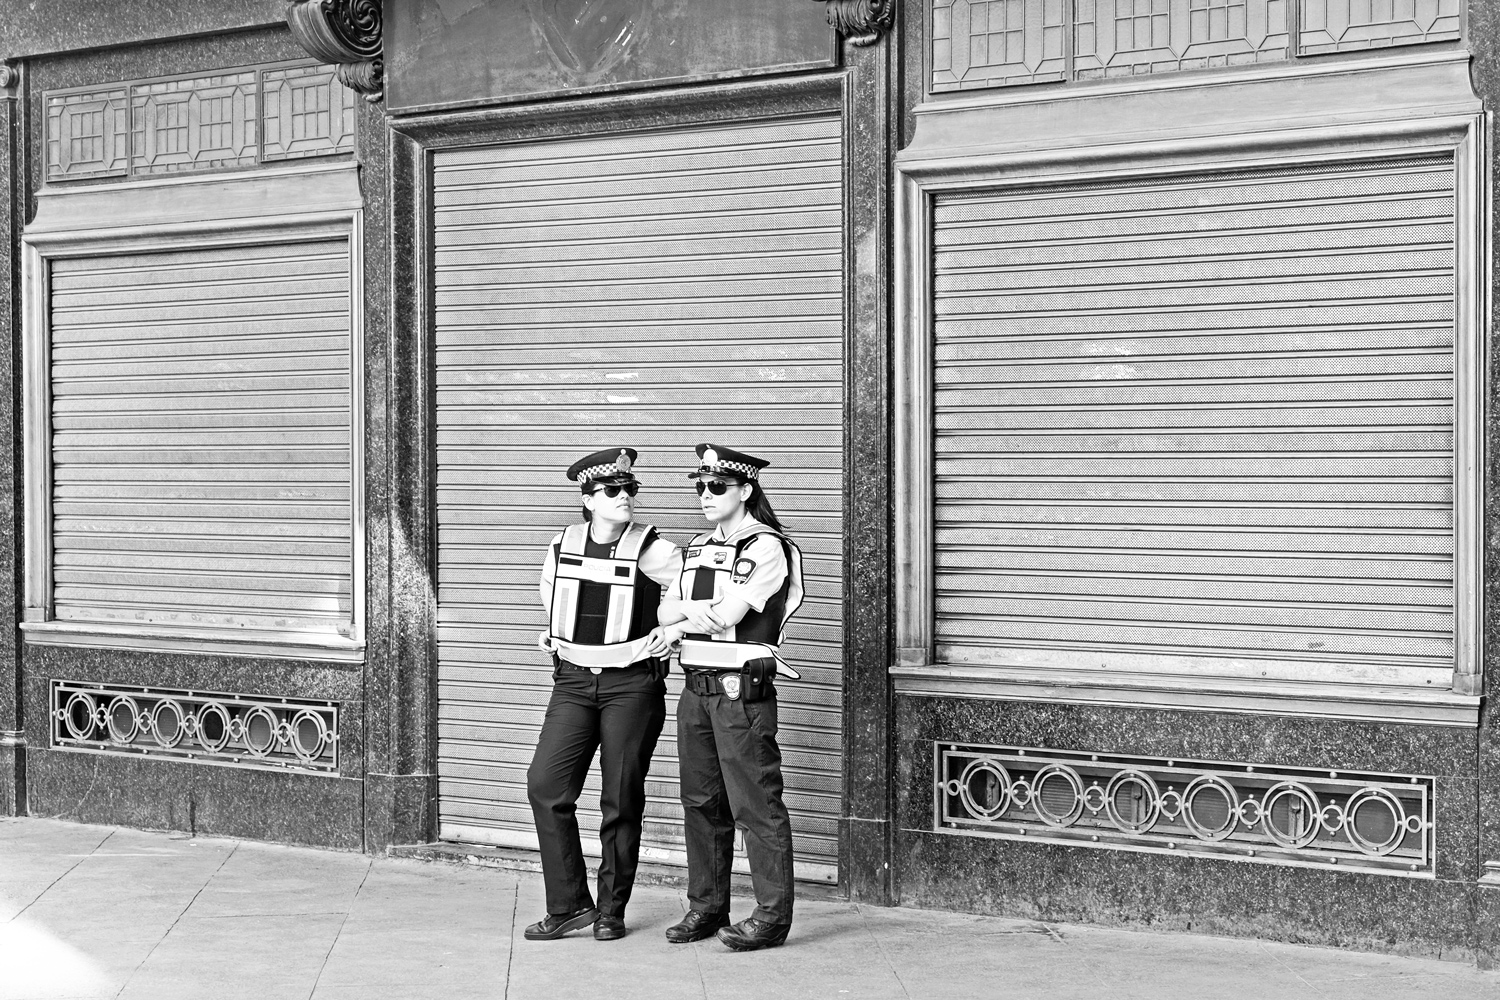 two-lady-cops-puerto-madero-buenos-aires-argentina.jpg